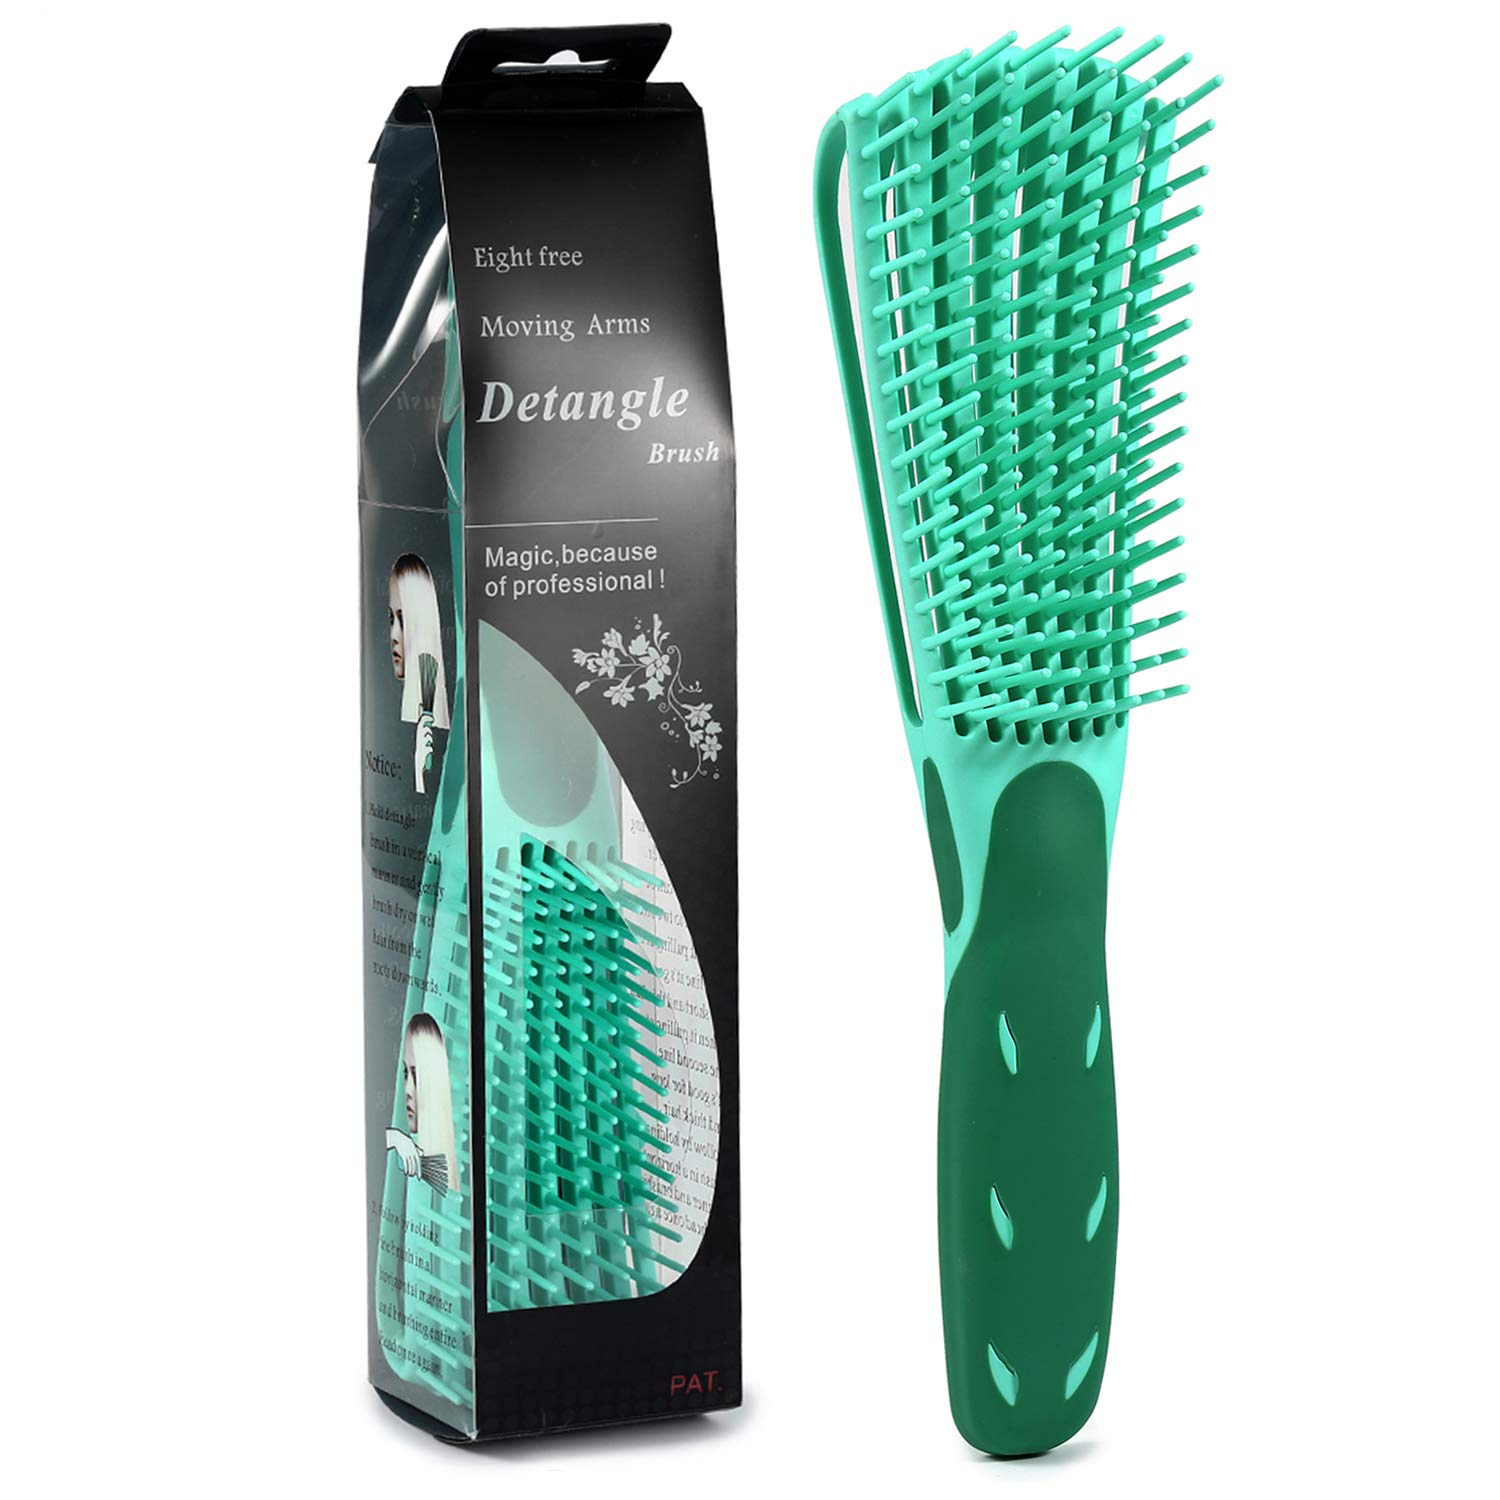 BESTOOL Detangling Brush for Natural Hair-Detangler for Afro America 3a to 4c Kinky Wavy, Curly, Coily Hair, Detangle Easily with Wet/Dry, Apply Conditioner/Oil - 1 Pack (Green)